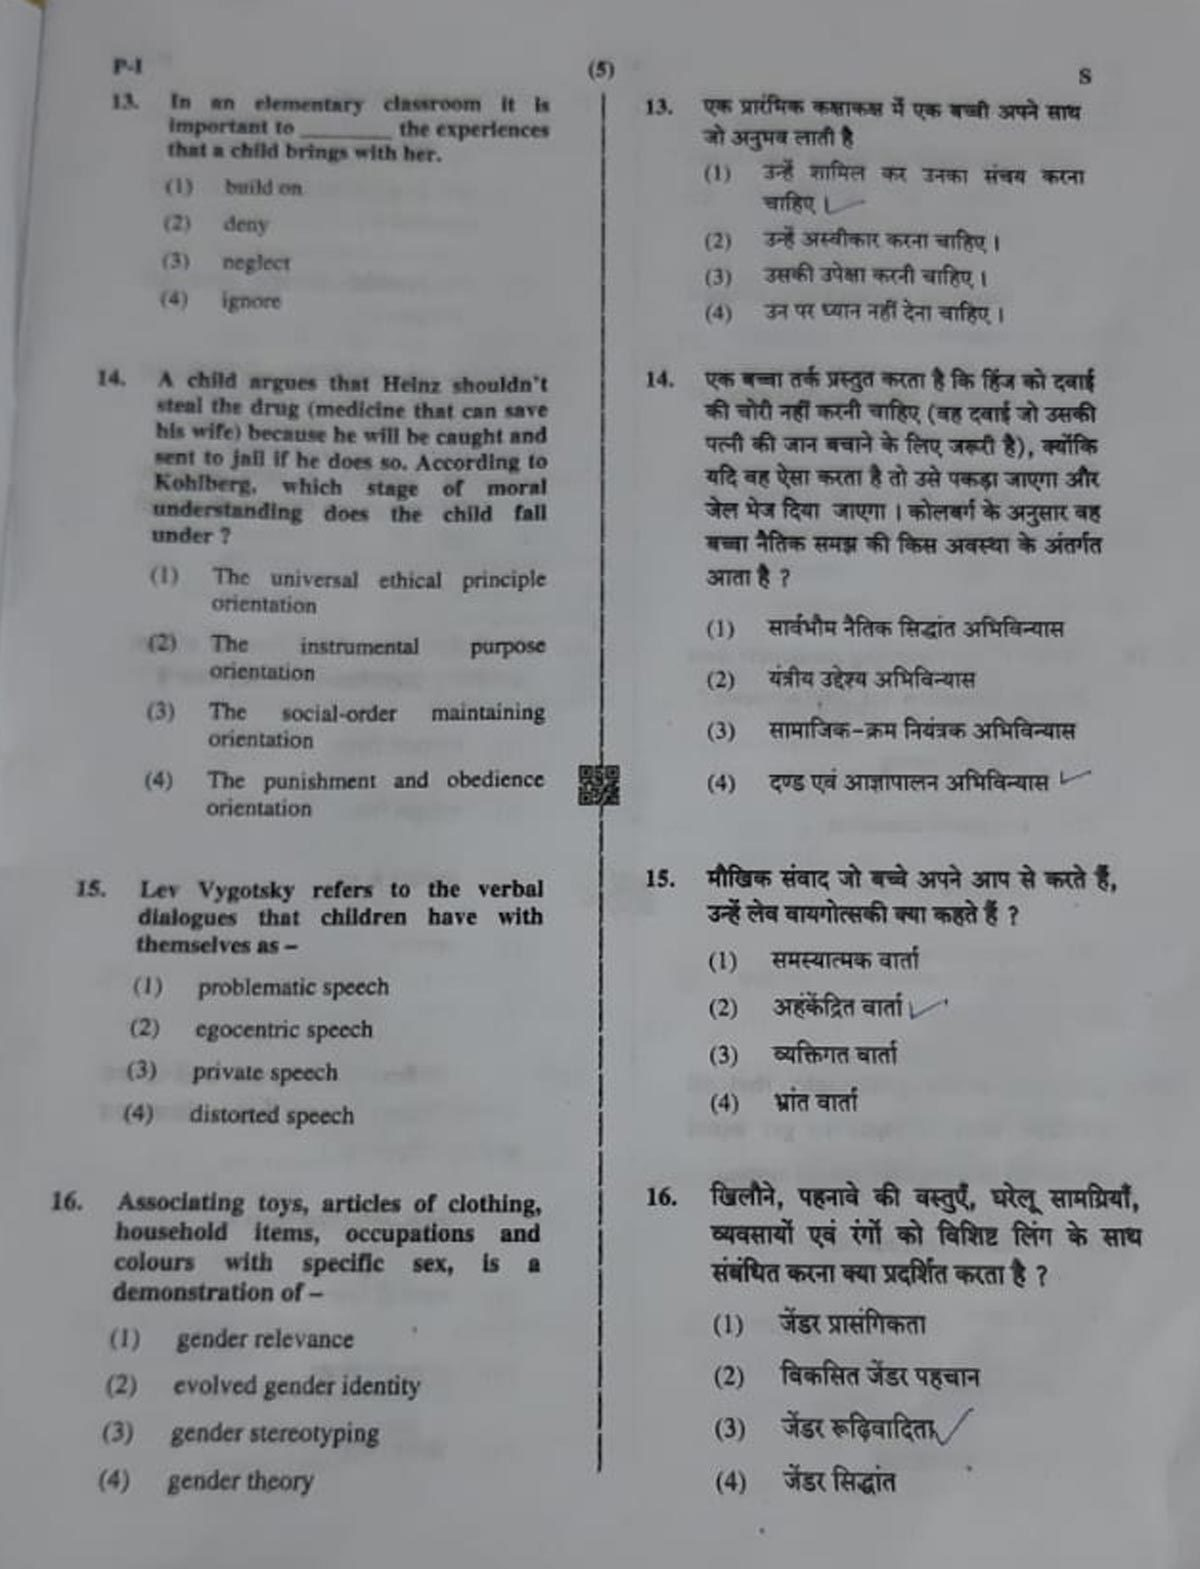 CTET July 2019 Question Paper 1 Analysis Times Of India